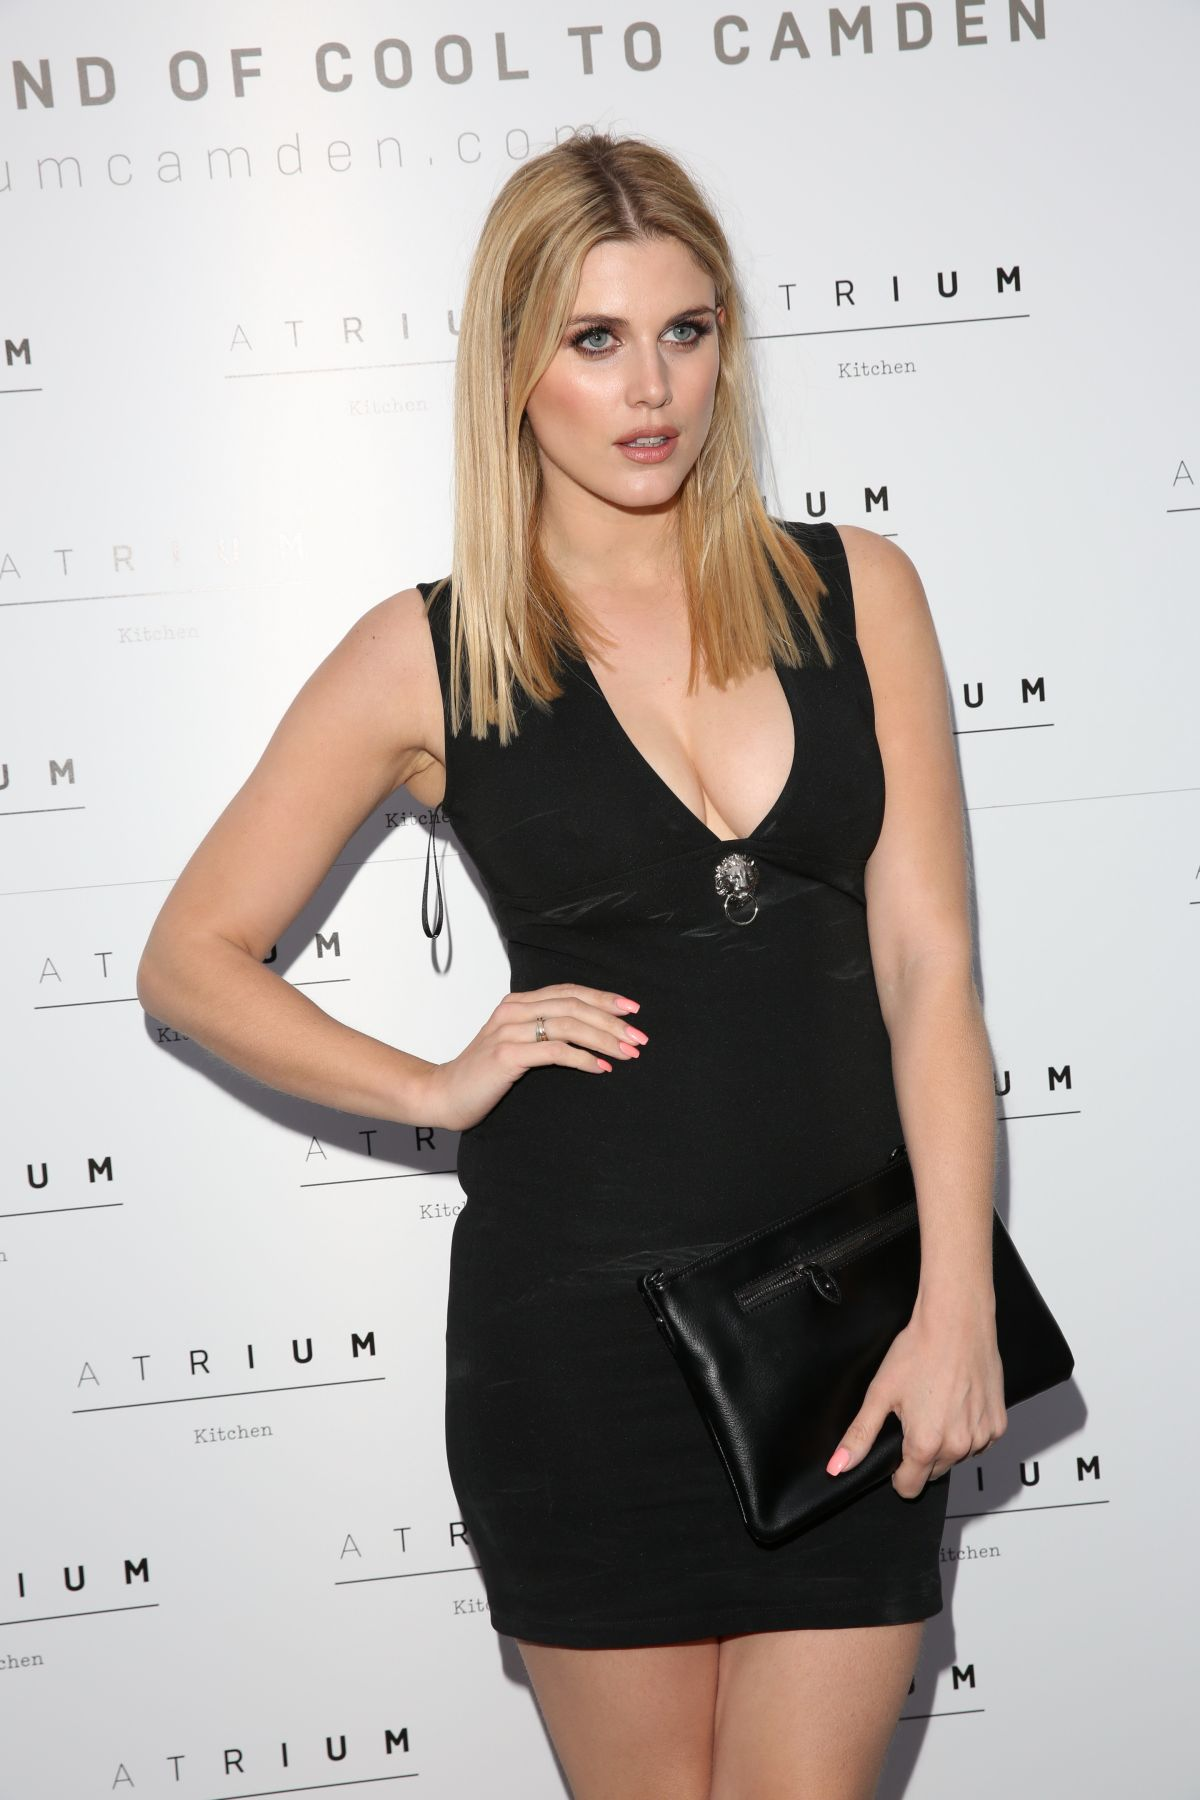 ASHLEY JAMES at Aatrium Kitchen Launch Party in Camden 05/25/2016